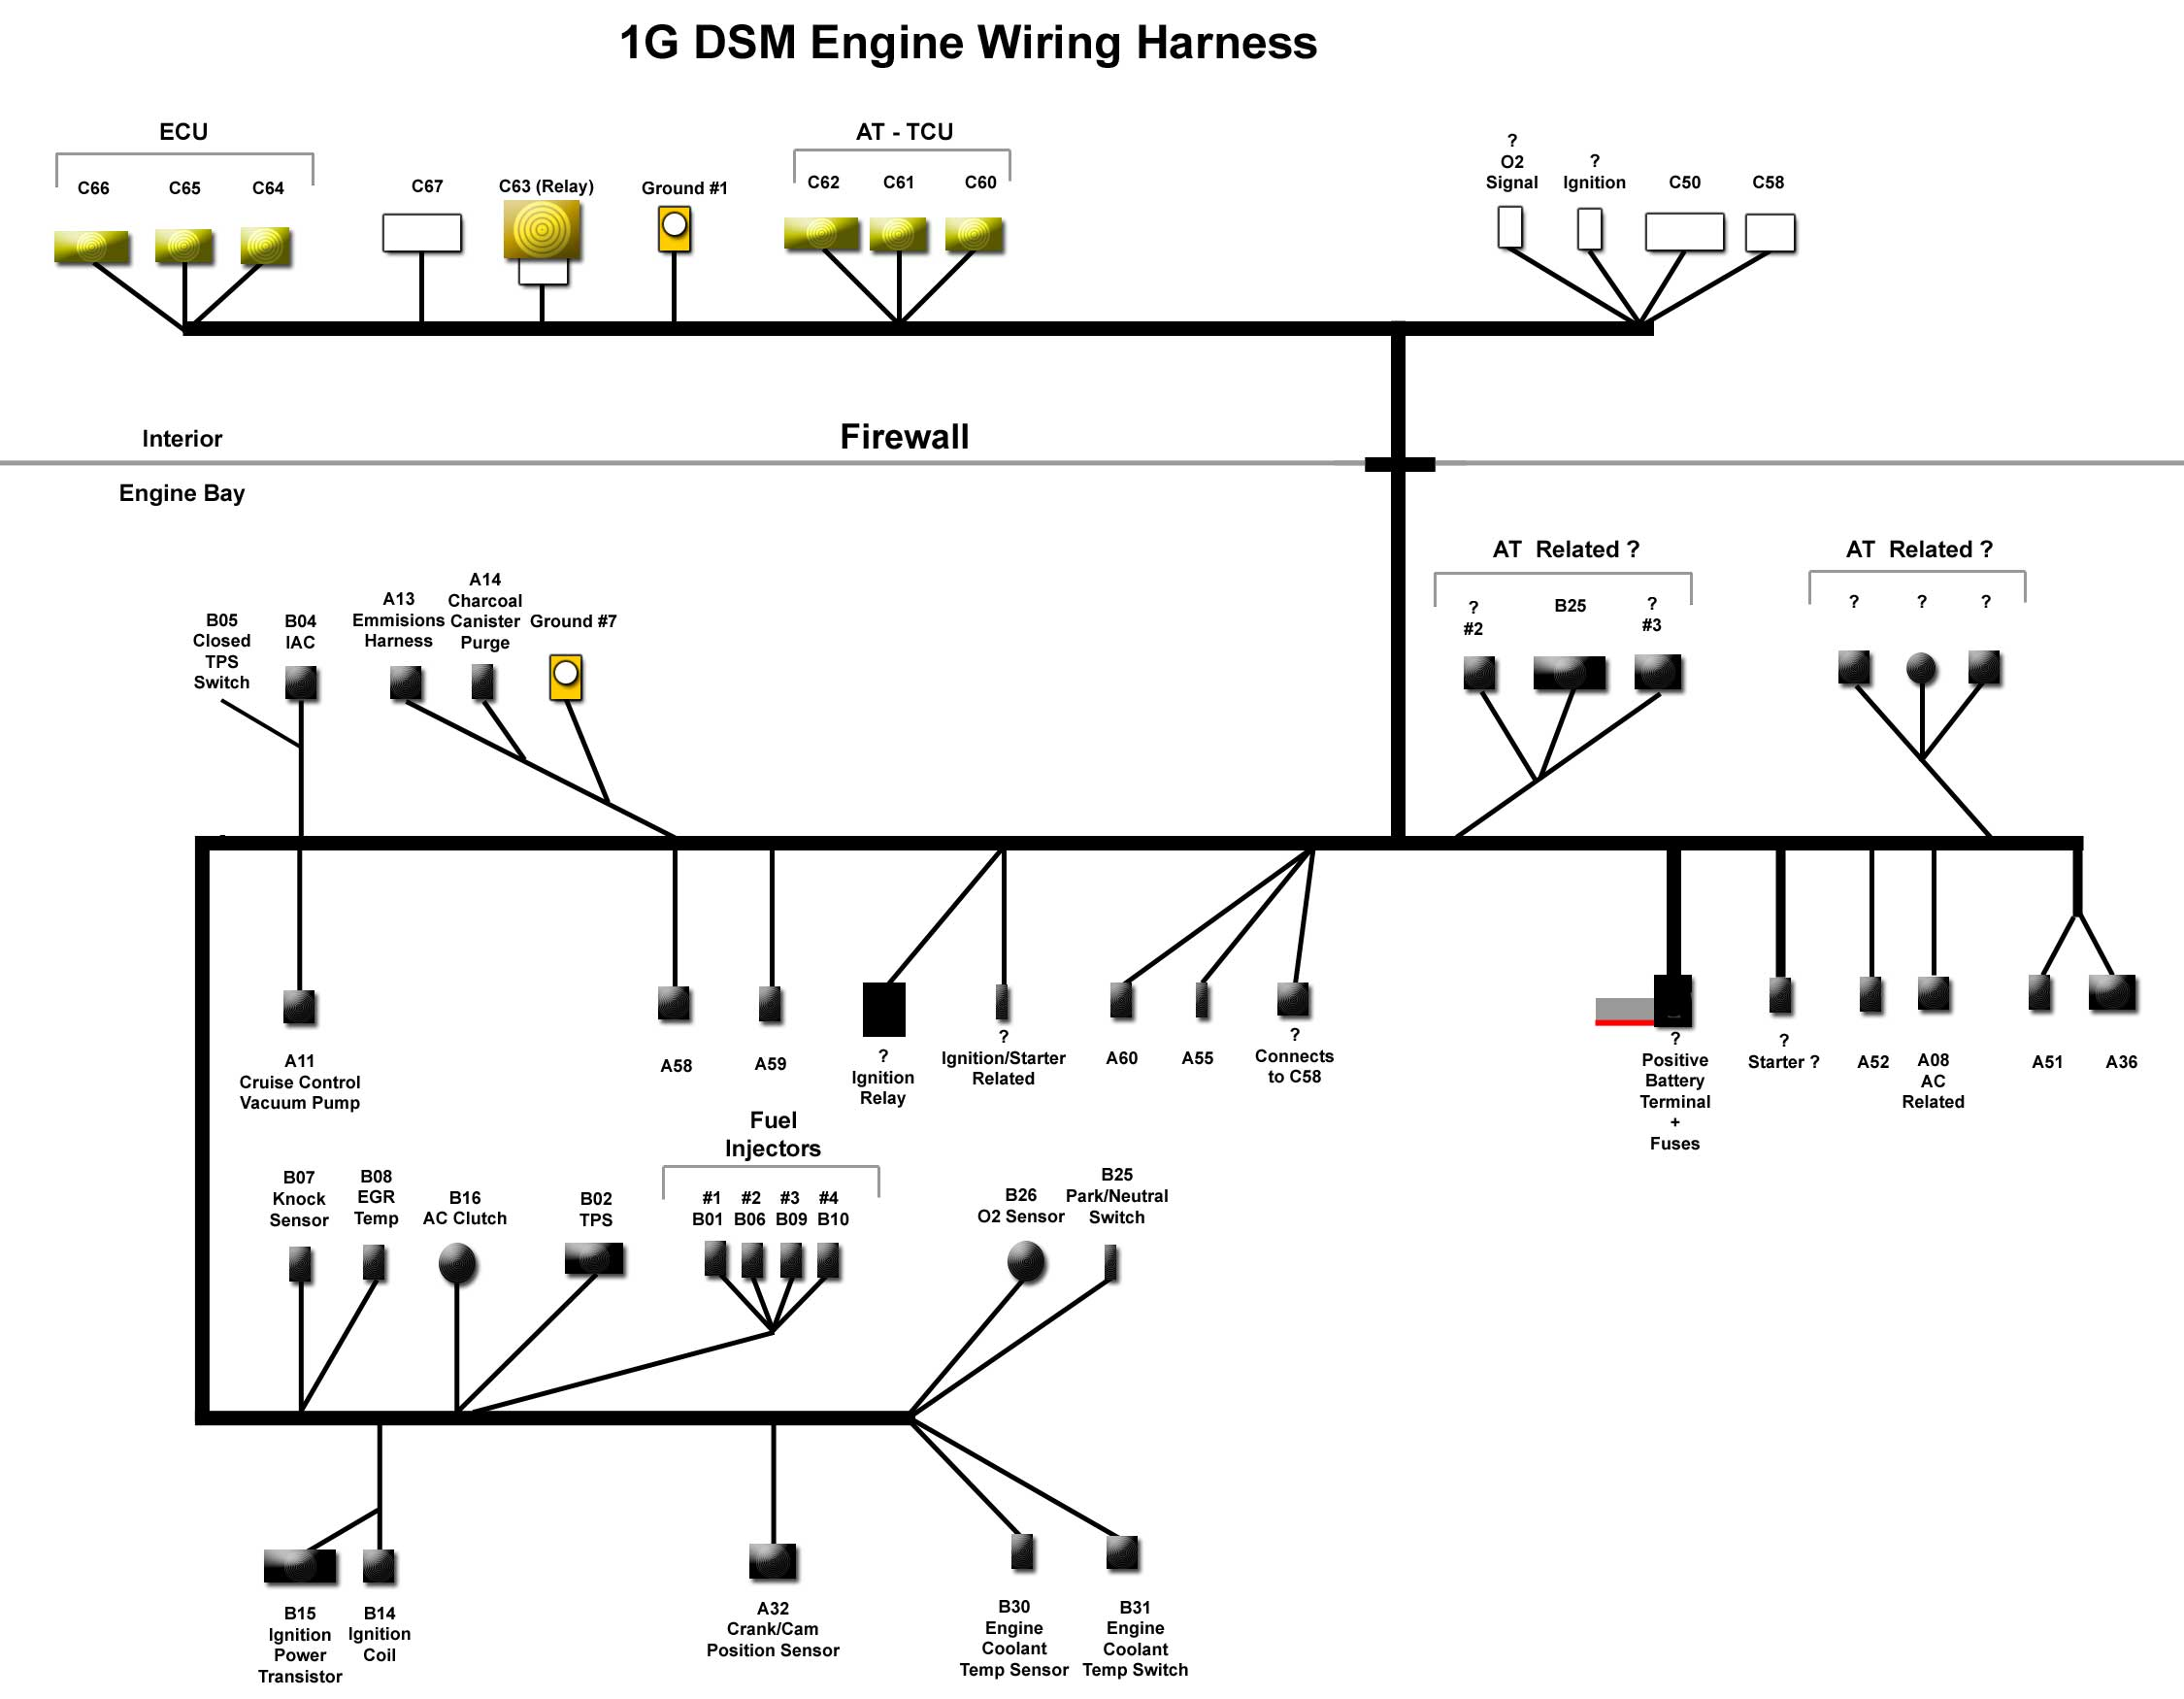 1G DSM EngineHarness wiring harness diagram readingrat net 2000 Mitsubishi Mirage Turbo Engine at creativeand.co